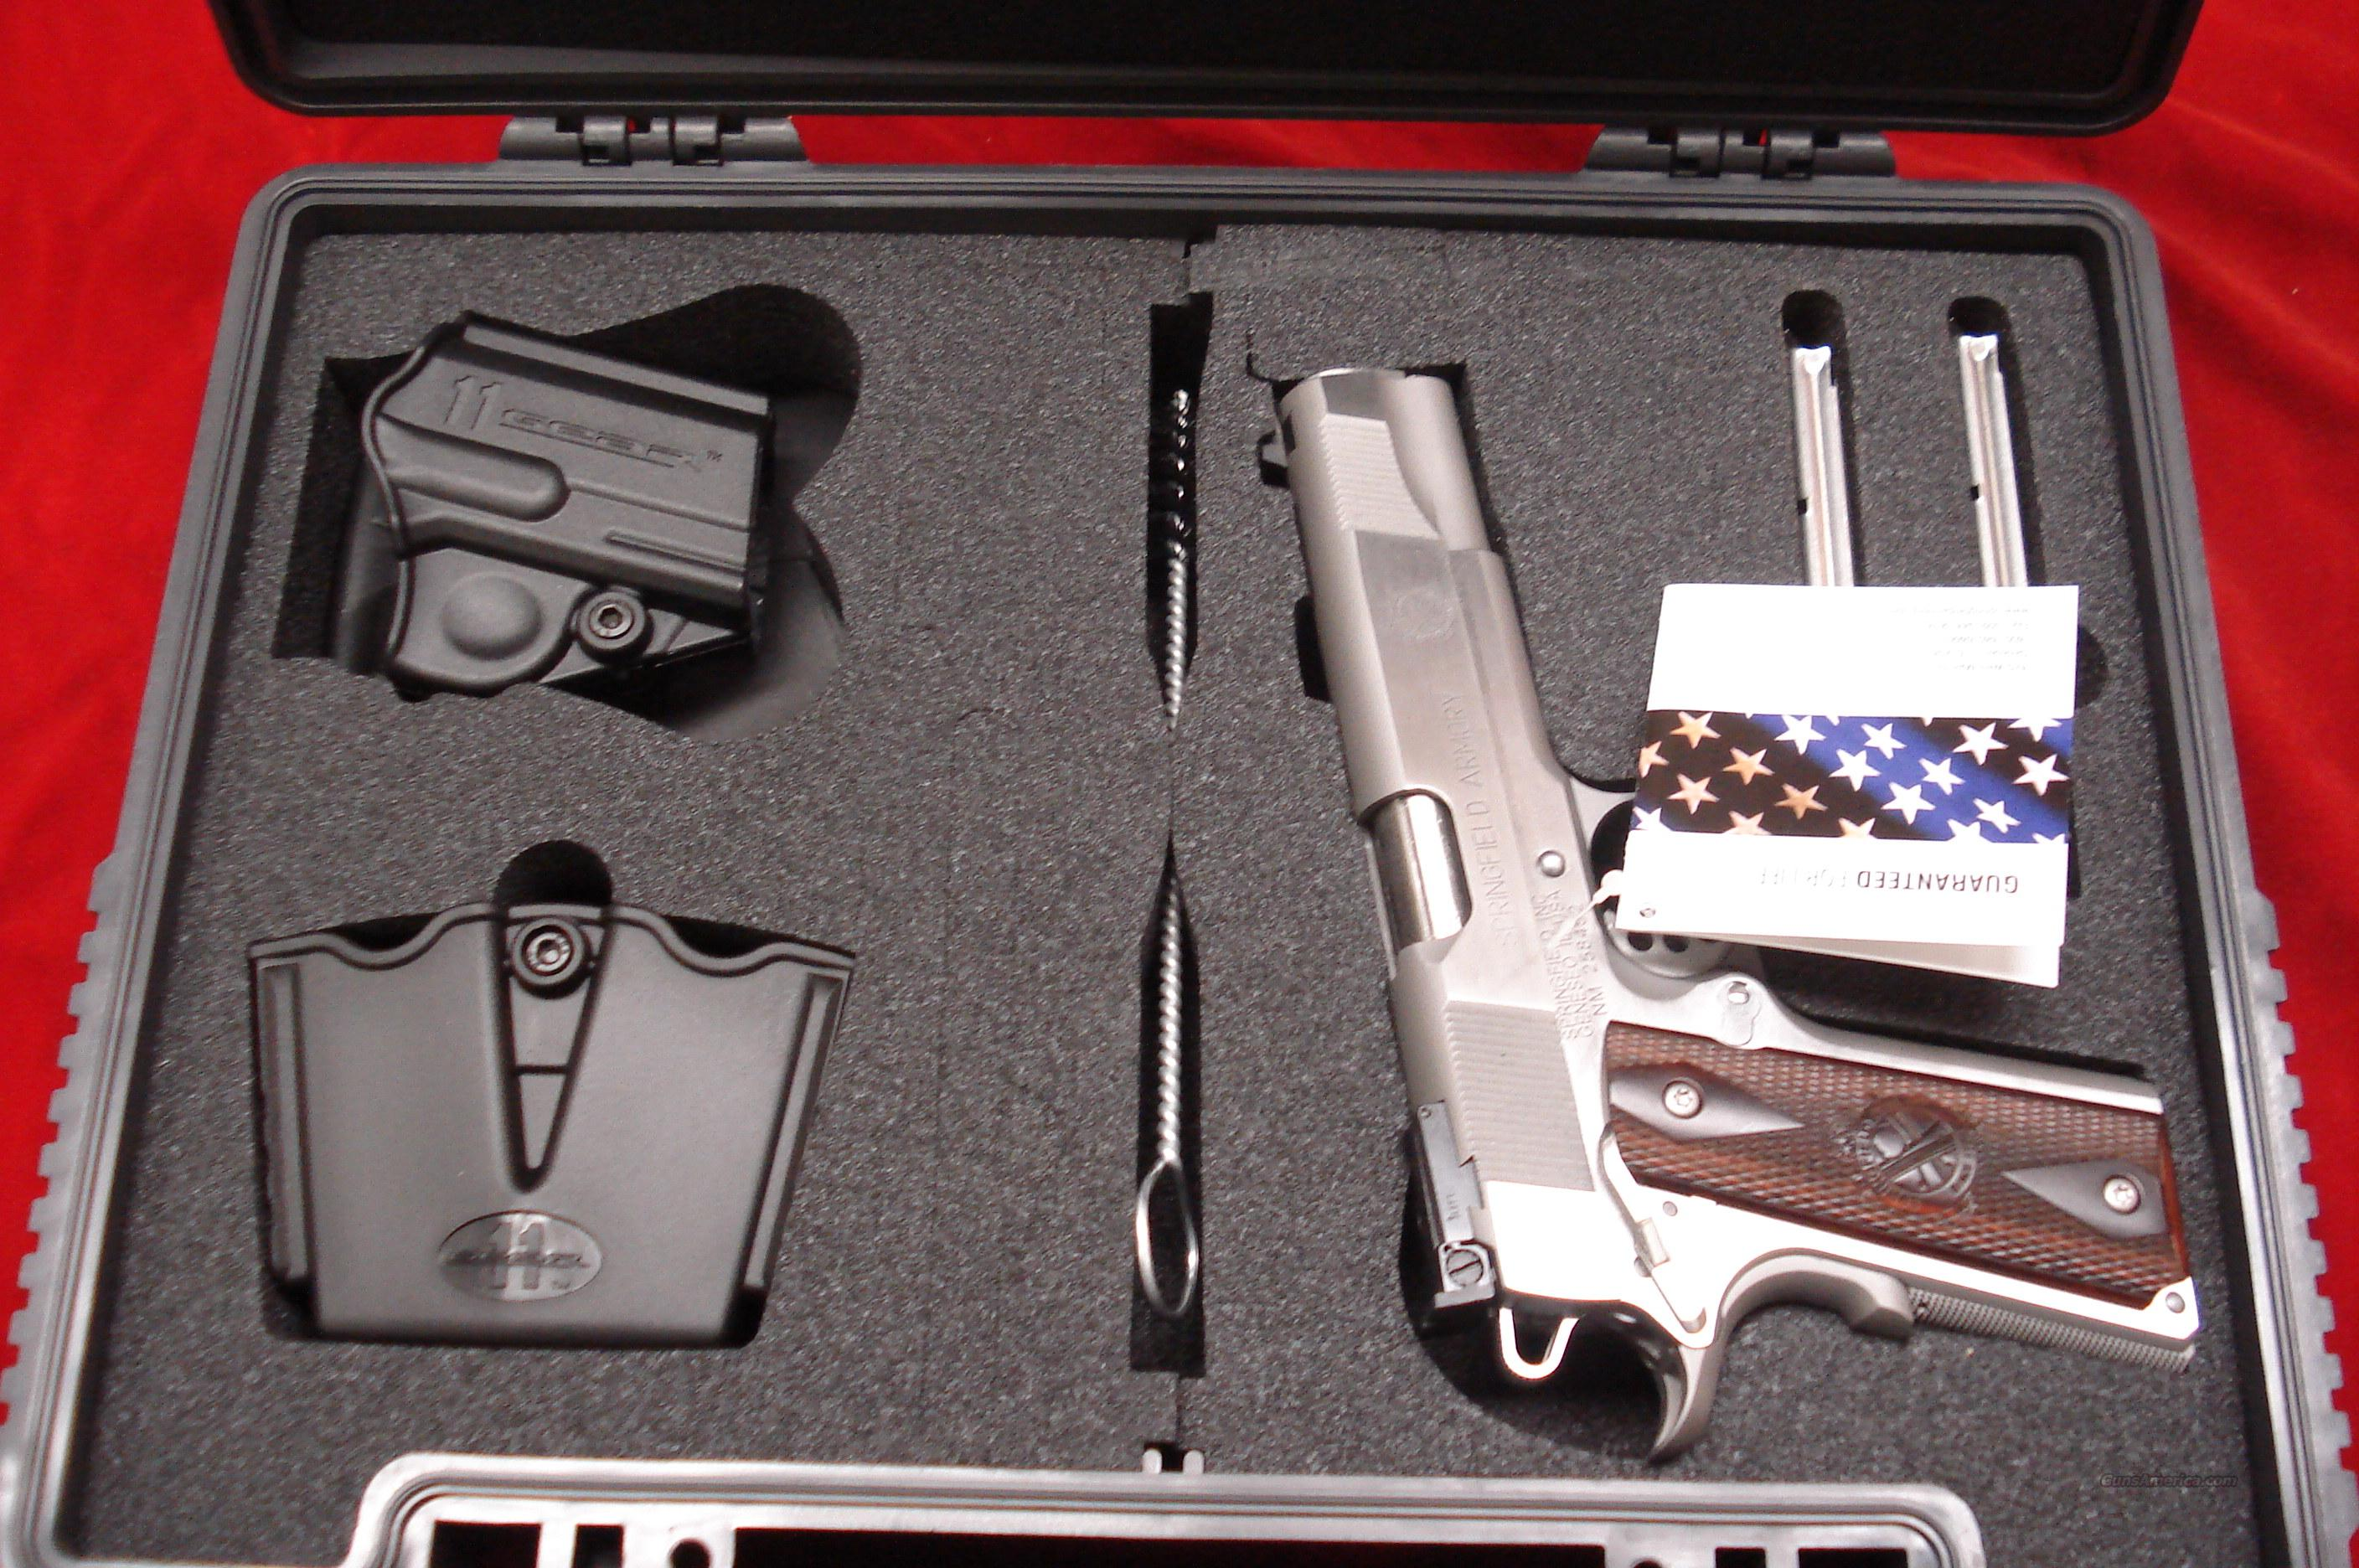 SPRINGFIELD ARMORY STAINLESS 9MM LOADED ADJUSTABLE SIGHTS (PI9134LP) NEW   Guns > Pistols > Springfield Armory Pistols > 1911 Type